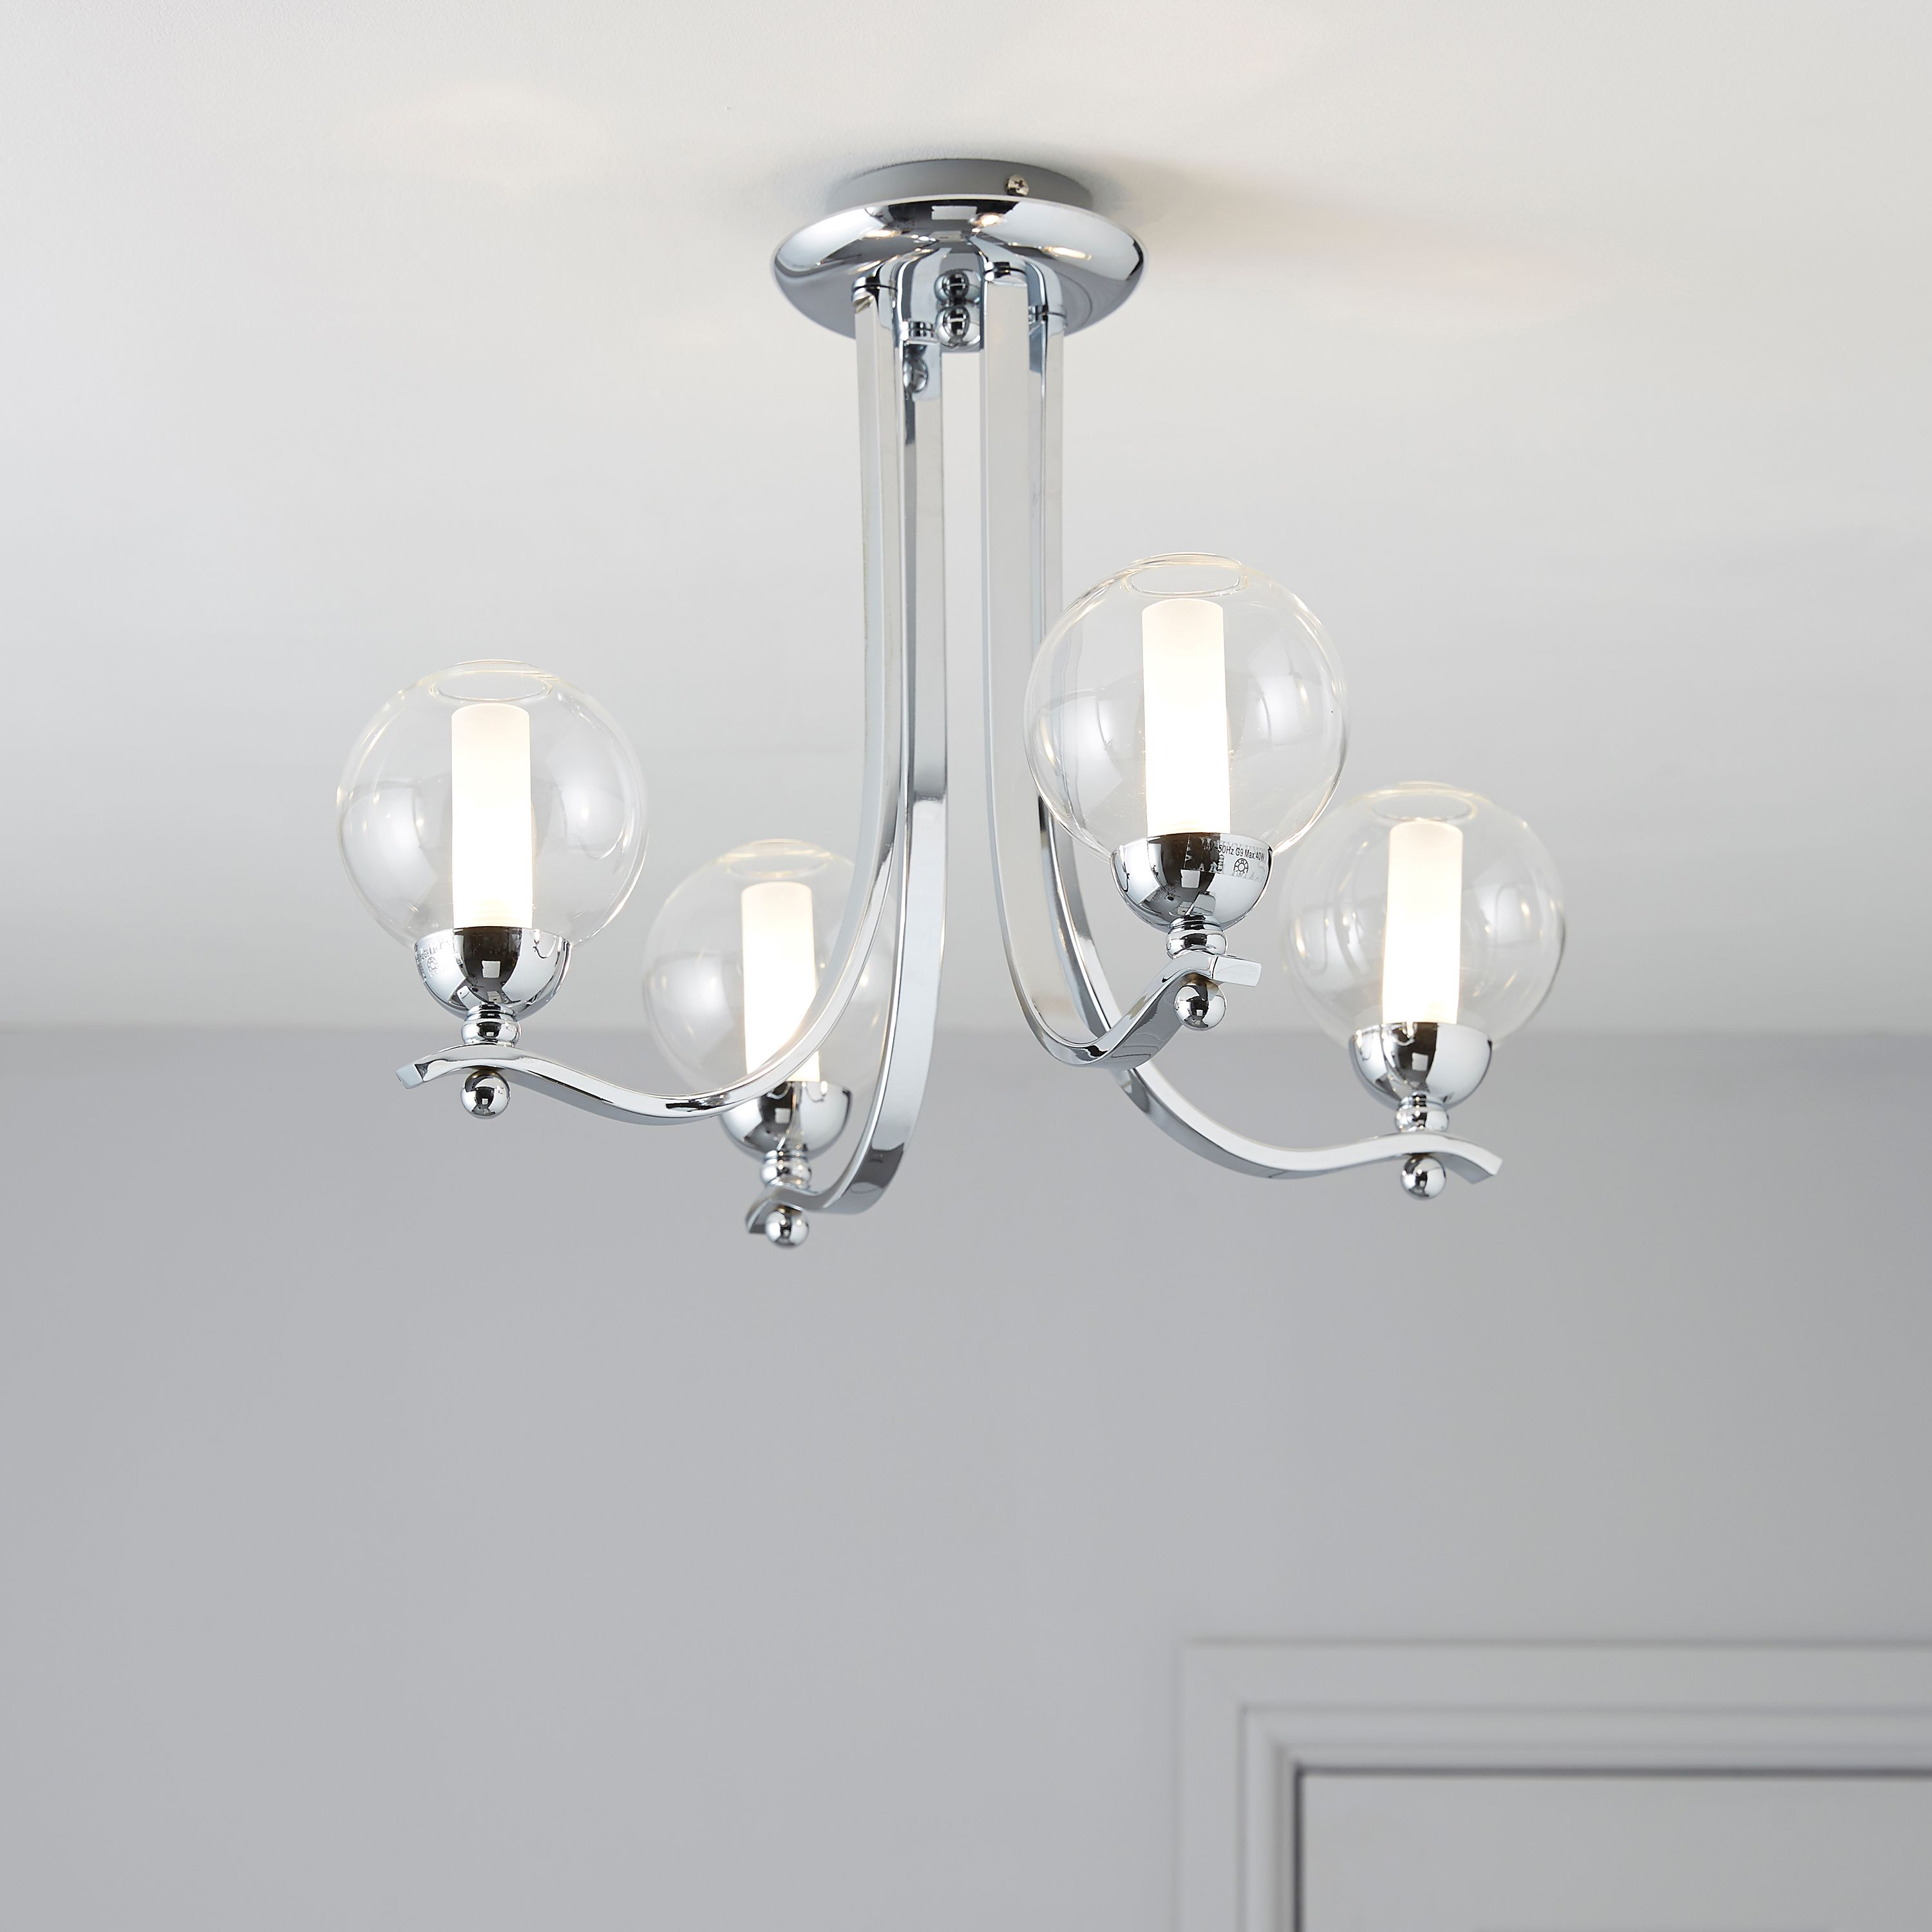 Glass Lamp Ceiling Giselle Glass Ball Chrome Effect 4 Lamp Ceiling Light